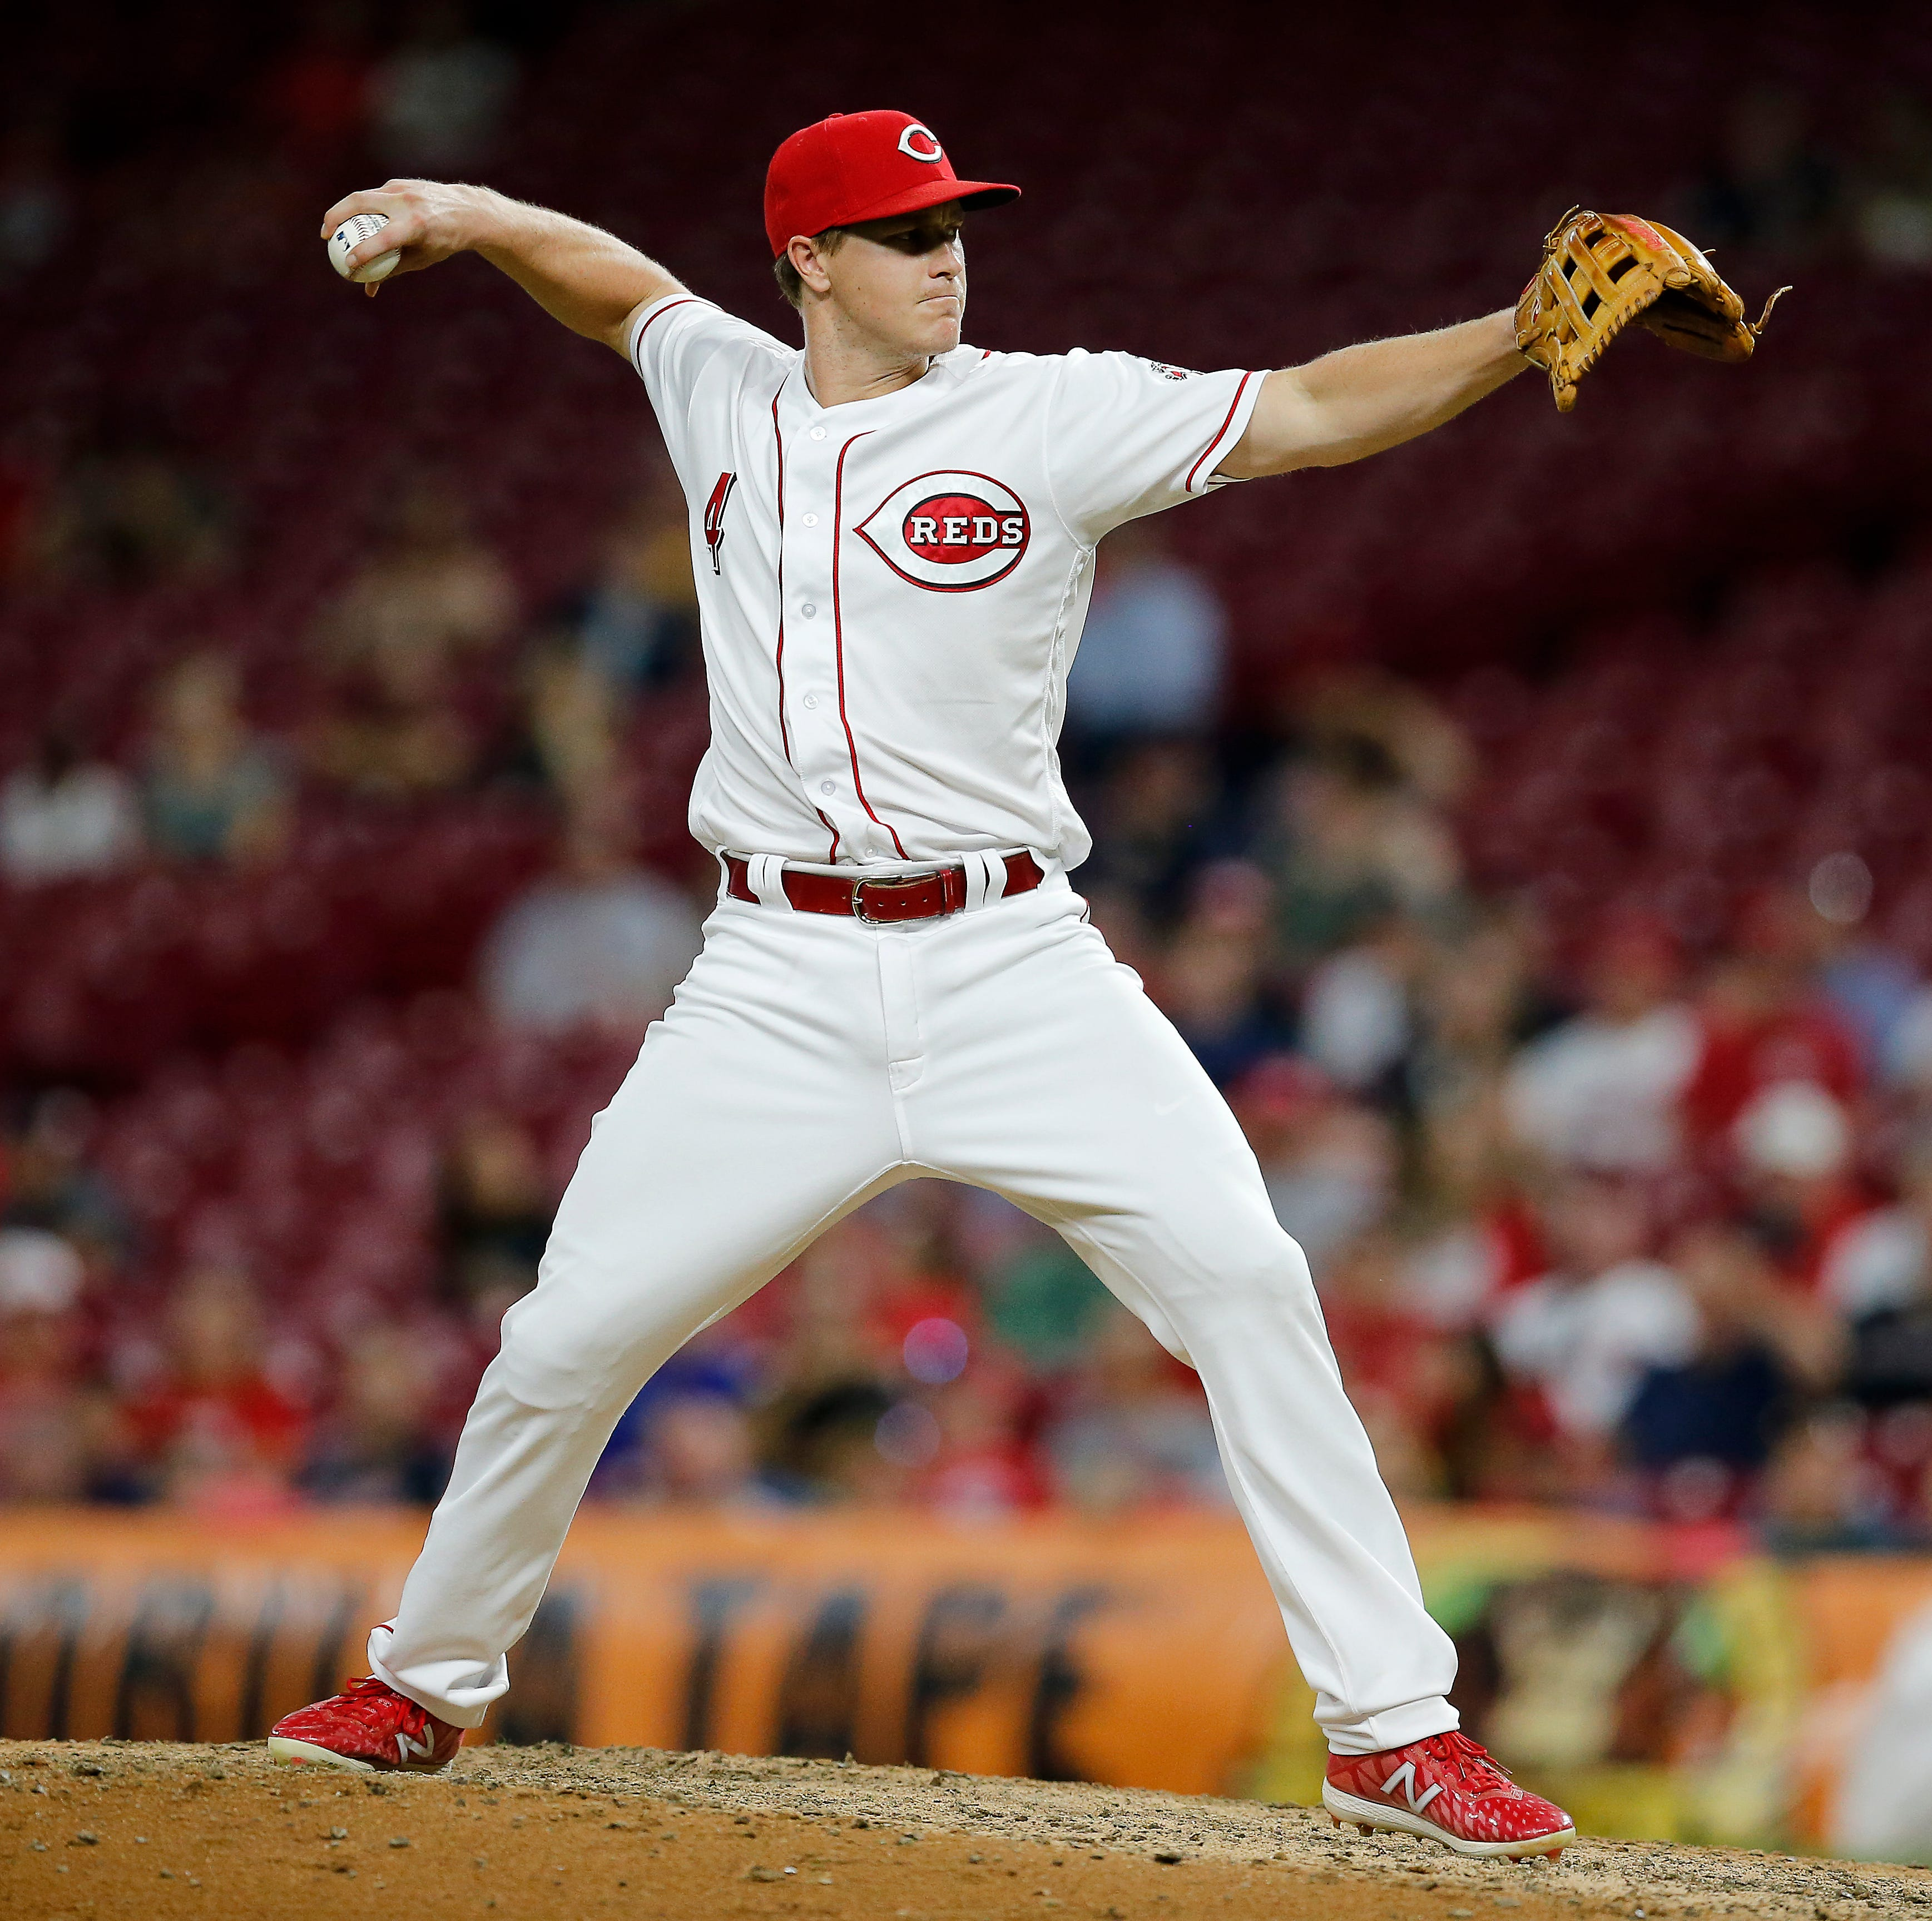 Brandon Dixon strikes out Jose Ramirez in Cincinnati Reds loss to Cleveland Indians